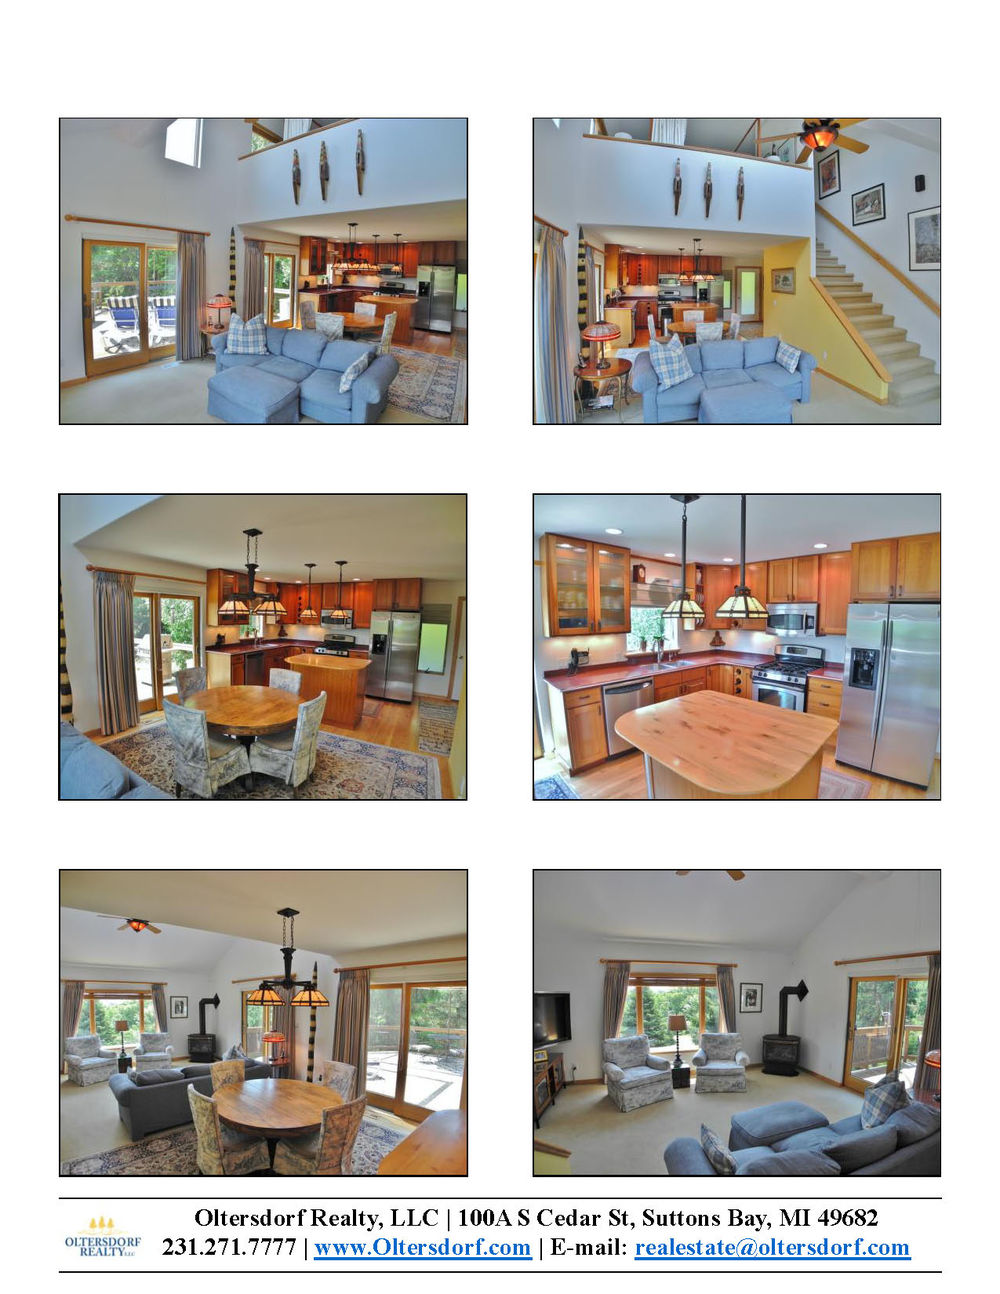 110 W Terrace Lane Commons, Leland, Leelanau County, Real Estate For Sale by Oltersdorf Realty Marketing Packet (4).jpg